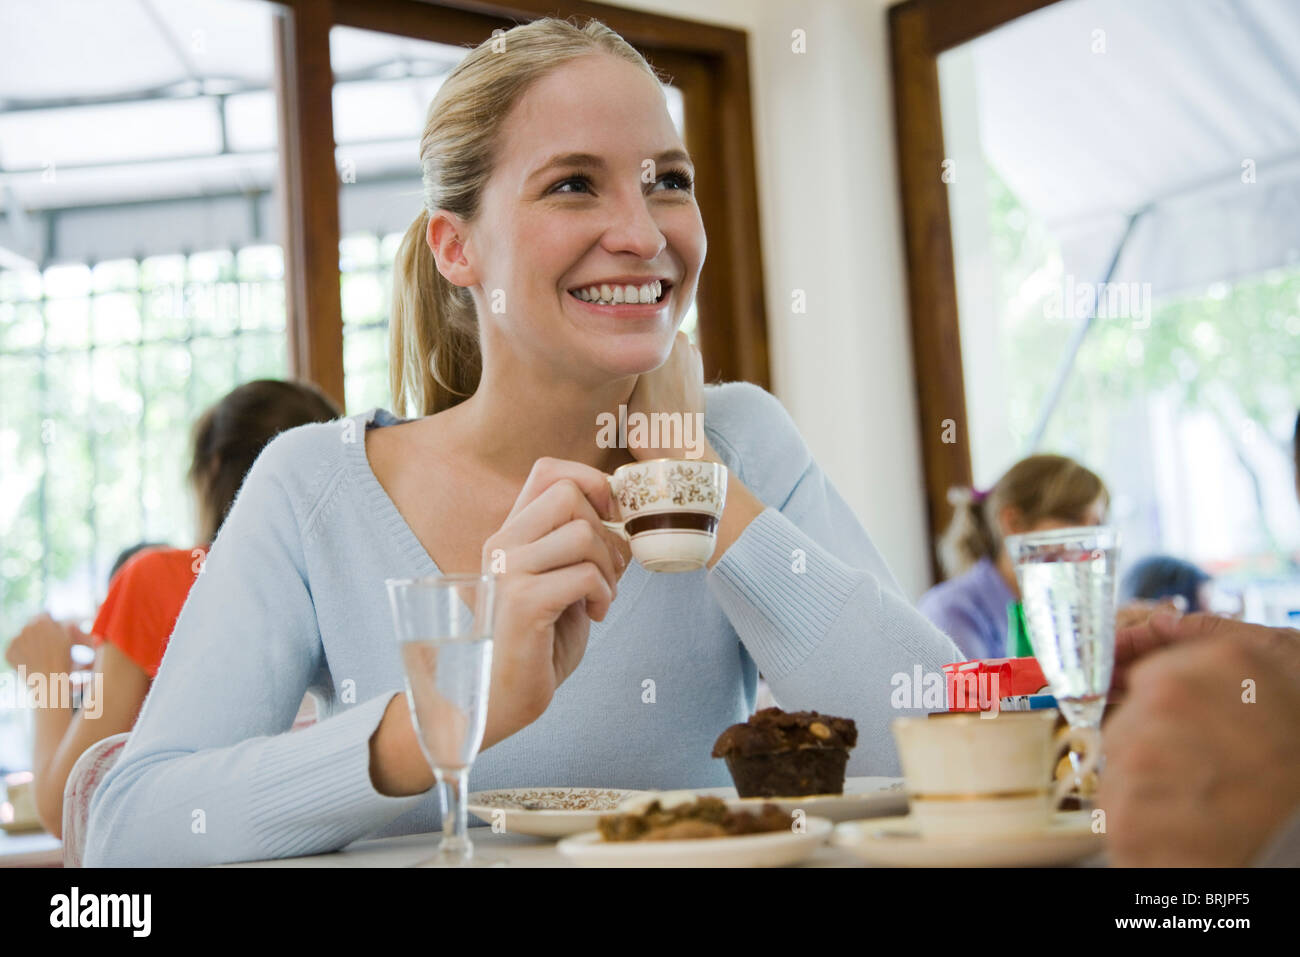 Young woman drinking coffee at cafe - Stock Image